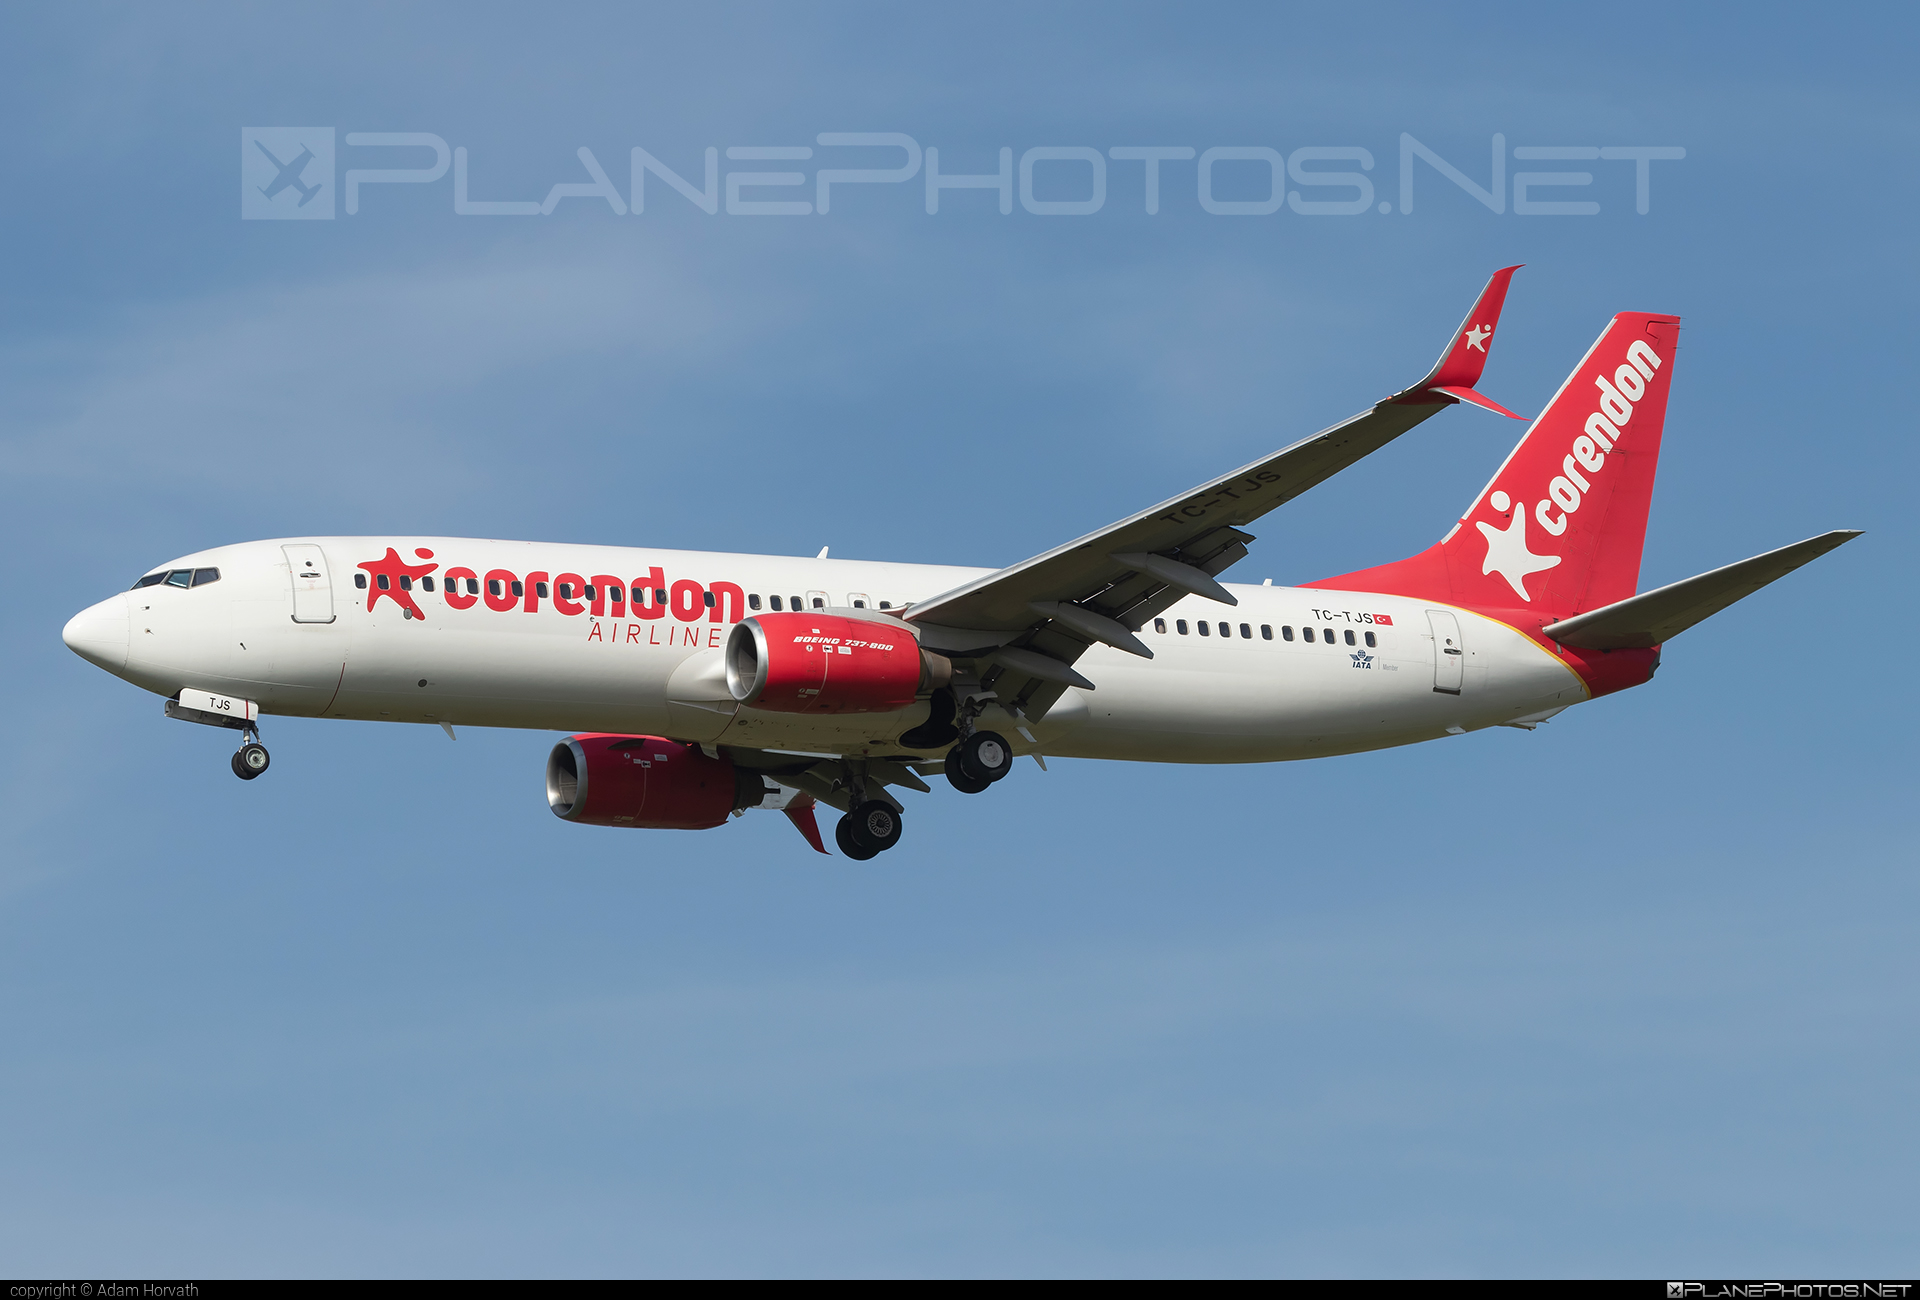 Boeing 737-800 - TC-TJS operated by Corendon Airlines #b737 #b737nextgen #b737ng #boeing #boeing737